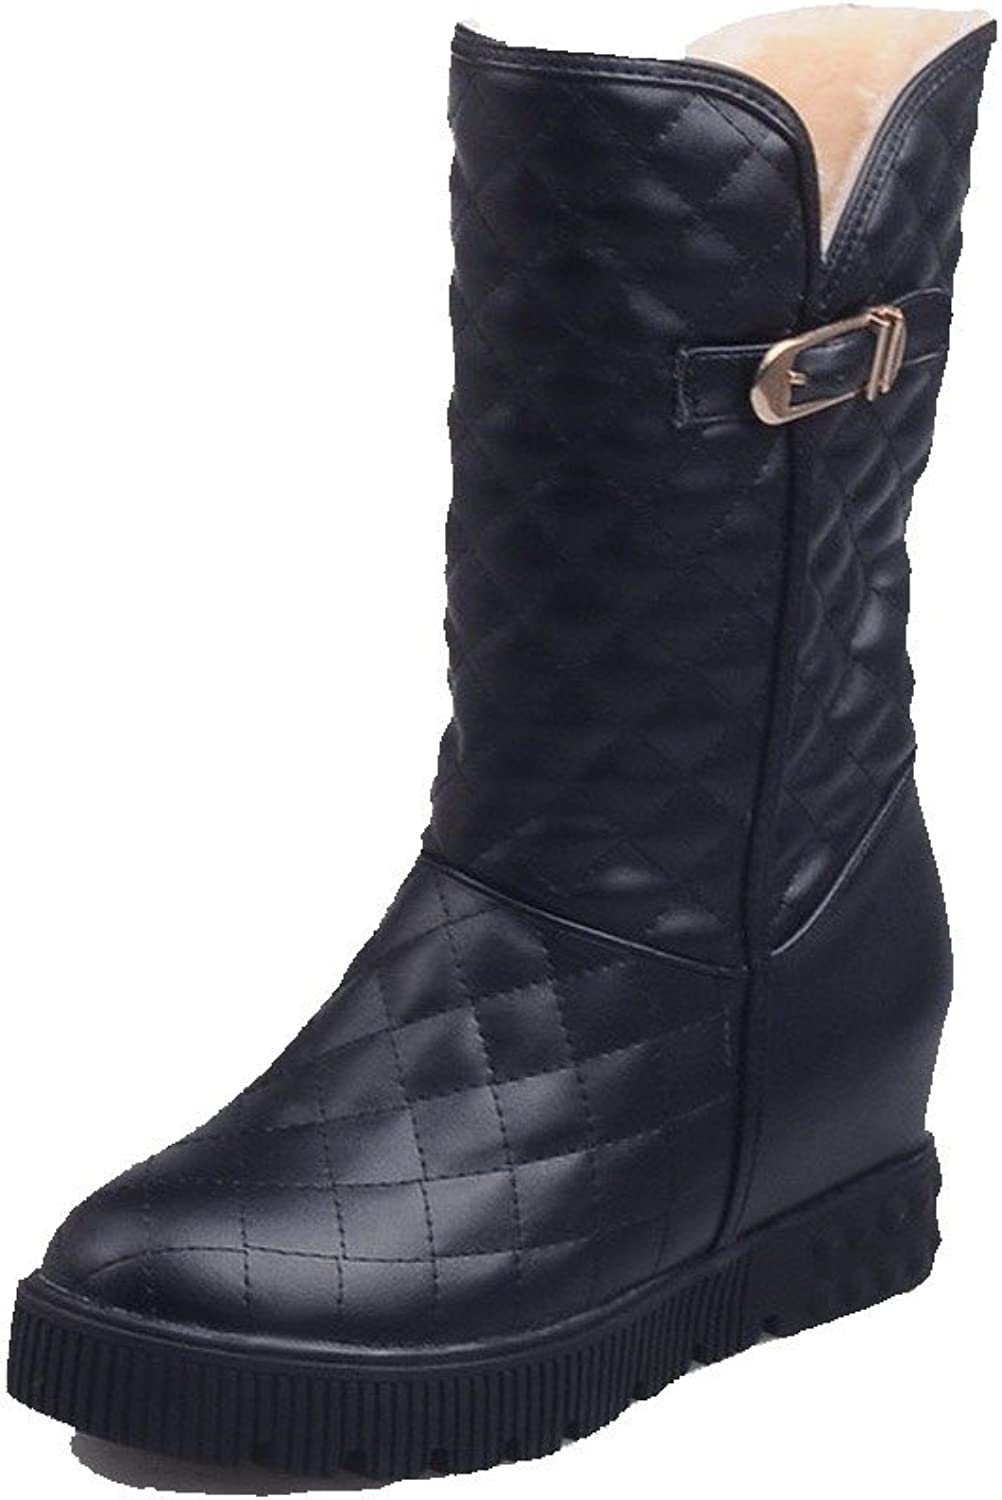 AllhqFashion Women's Mid Top Solid Pull On Round Closed Toe Kitten Heels Boots